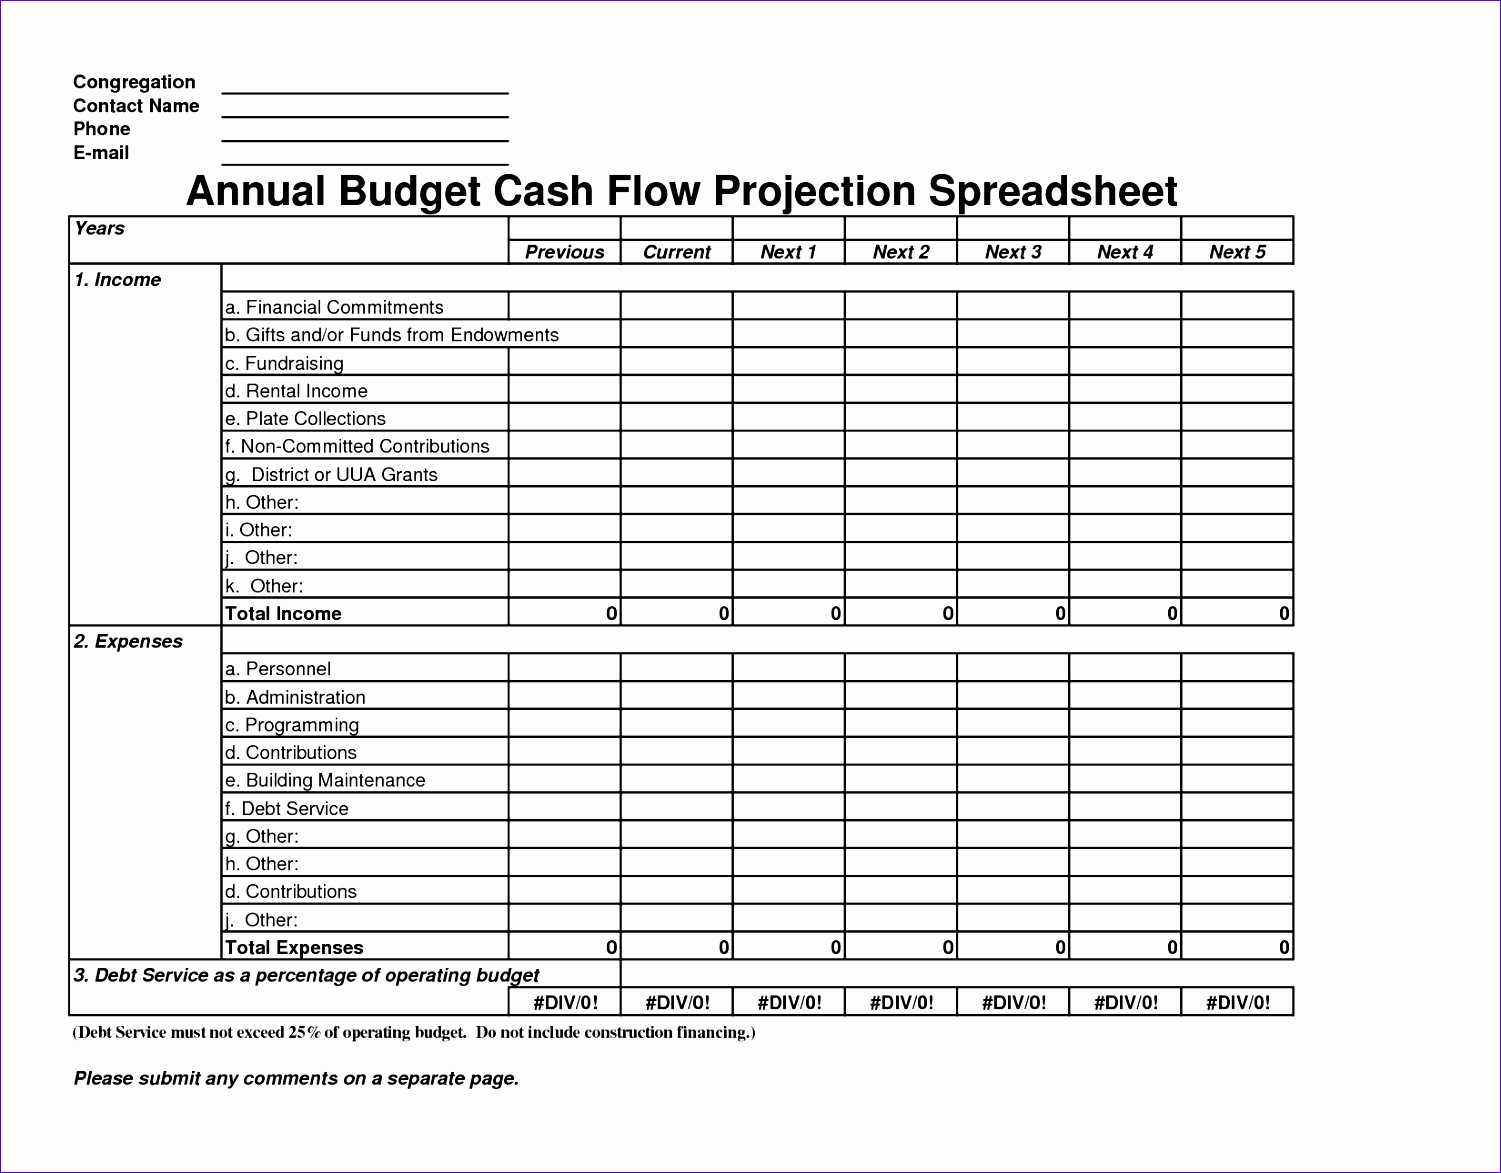 furthermore Free Sales Plan Templates Smartsheetiness Forecast Tem Cmerge as well Weekly Cash Flow Template Photo Gallery On Website Cash Flow also  additionally Small Business Templates ED8P Cash Flow Projection Worksheet besides template  Cash Flow Projection Worksheet Template together with Free Worksheets Liry   Download and Print Worksheets   Free on further  likewise template  5 Year Cash Flow Projection Template Financial Projections furthermore  furthermore  as well Cash Flow Projection Worksheet Template   Costumepartyrun in addition 3 Pro Financial Projections Template Cash Flow Projection Free in addition Top Result Quarterly Cash Flow Projection Template Excel Beautiful in addition  likewise monthly cash flow statement template. on cash flow projection worksheet template